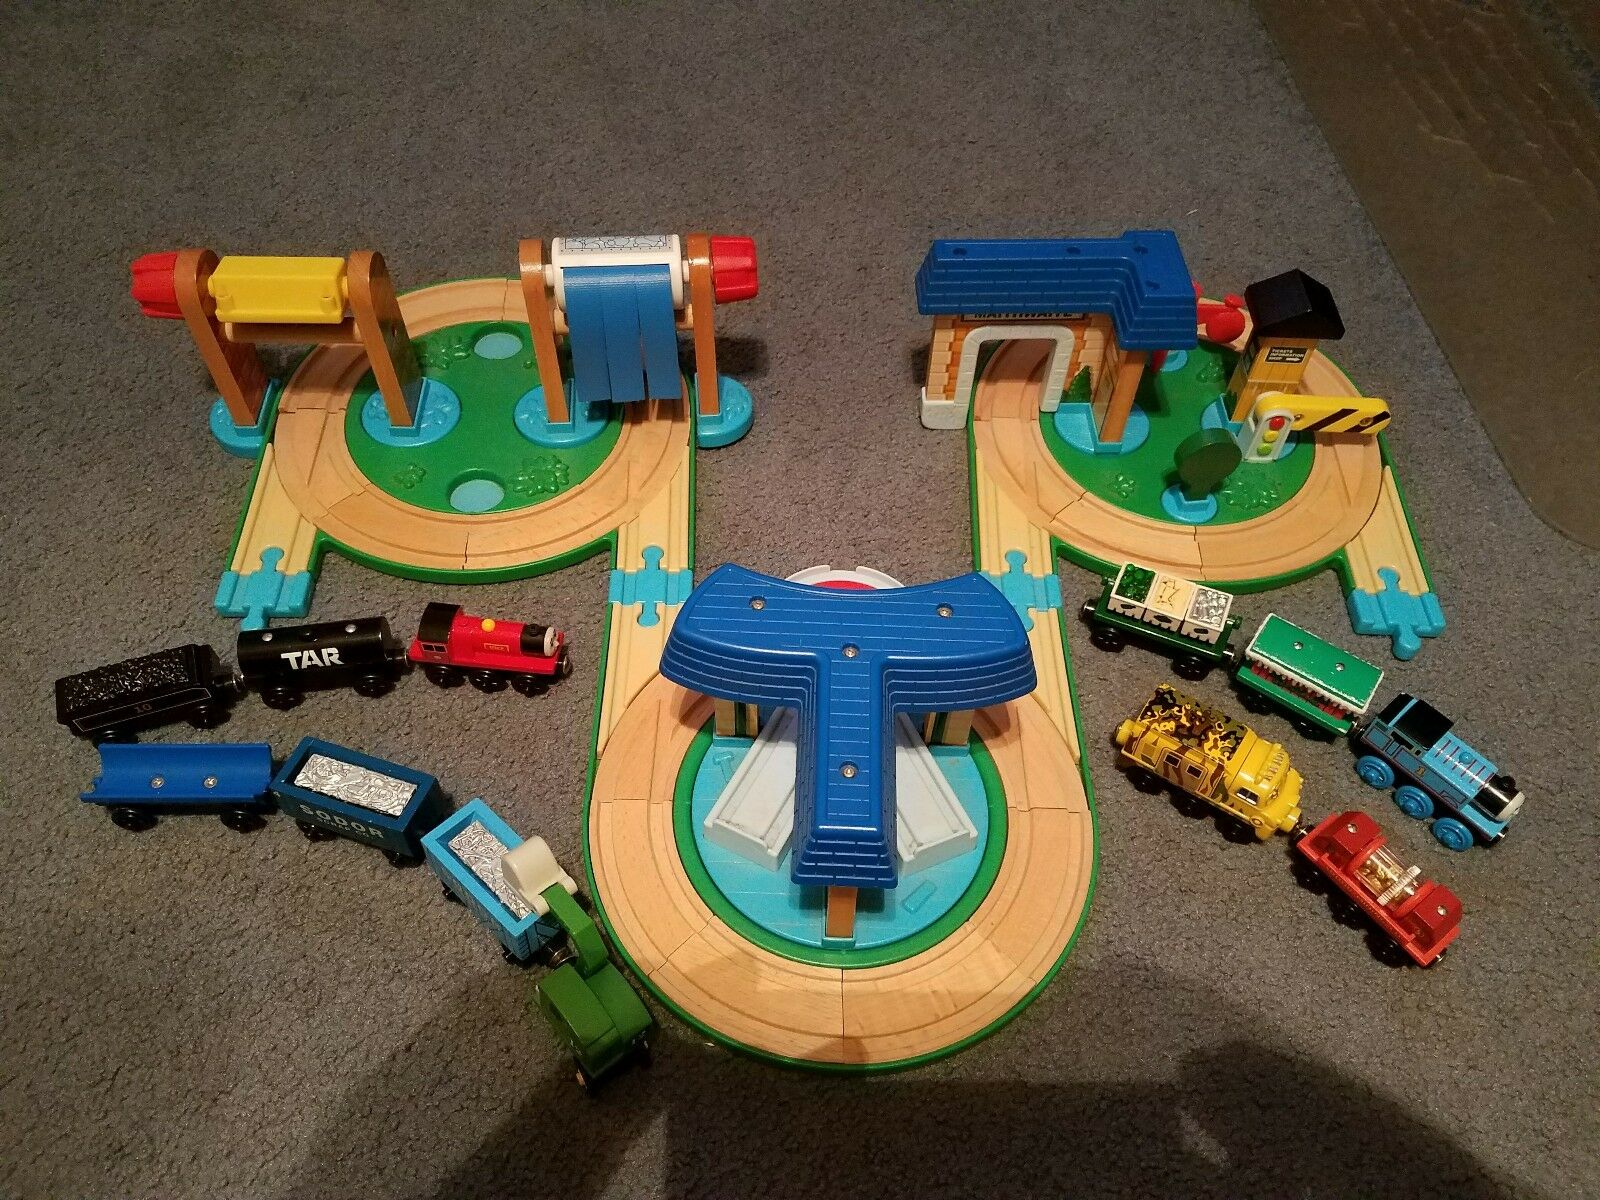 Thomas and friends busy day on sodor set, roundabout station set, 12 train cars